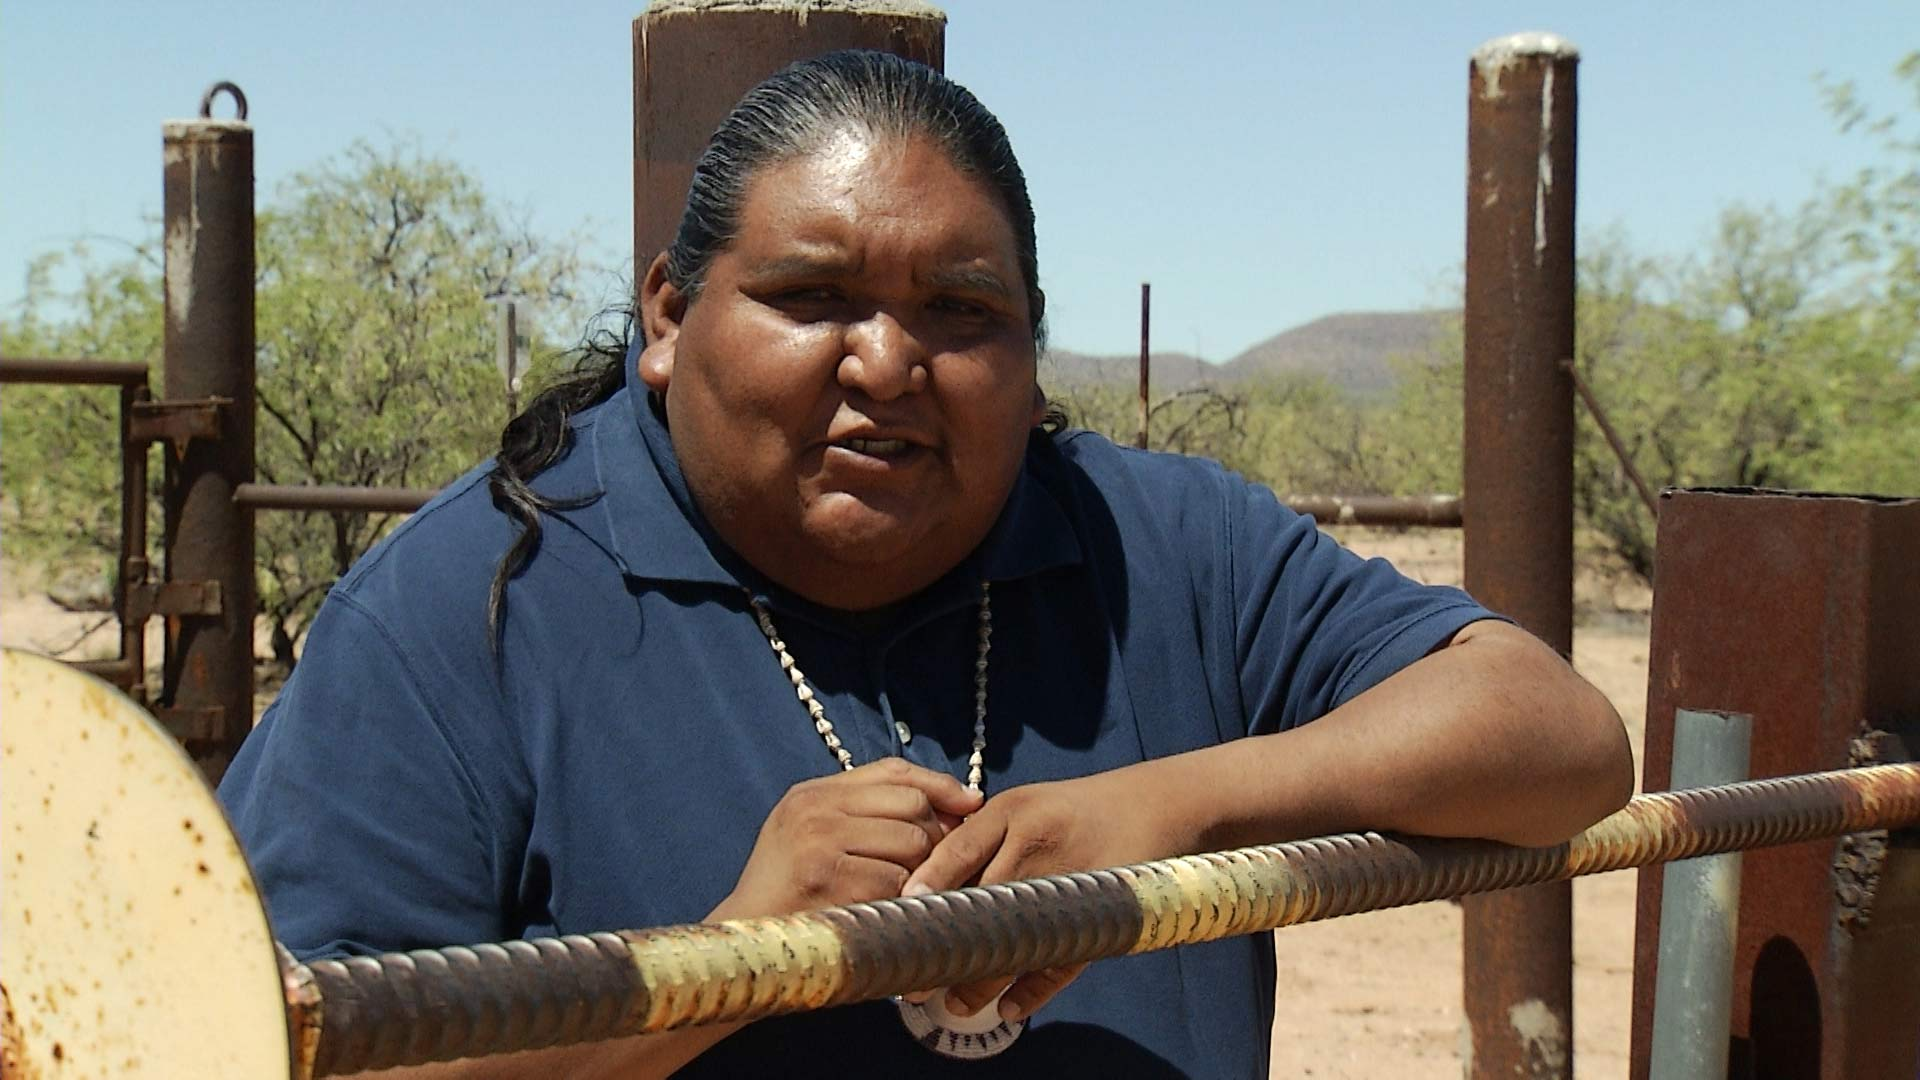 Tohono O'odham Vice Chairman Verlon Jose leans against a fence on the U.S.-Mexico border, which divides the Nation.